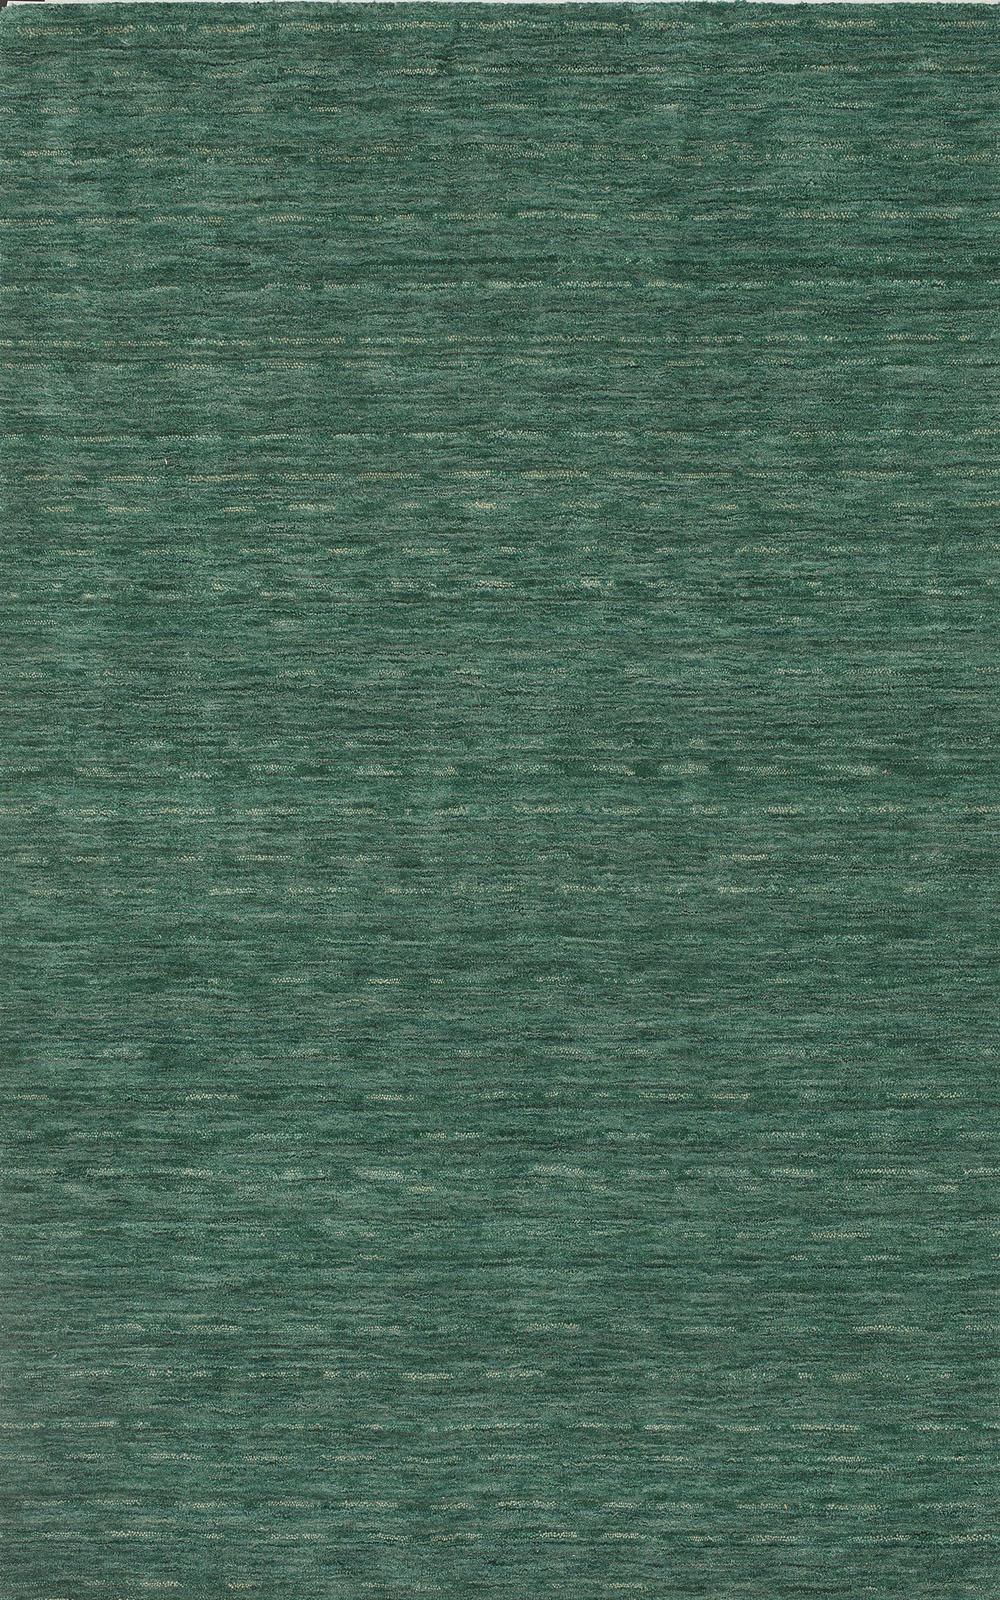 Rafia Emerald Dyed Wool Pile Rug Textured Plush